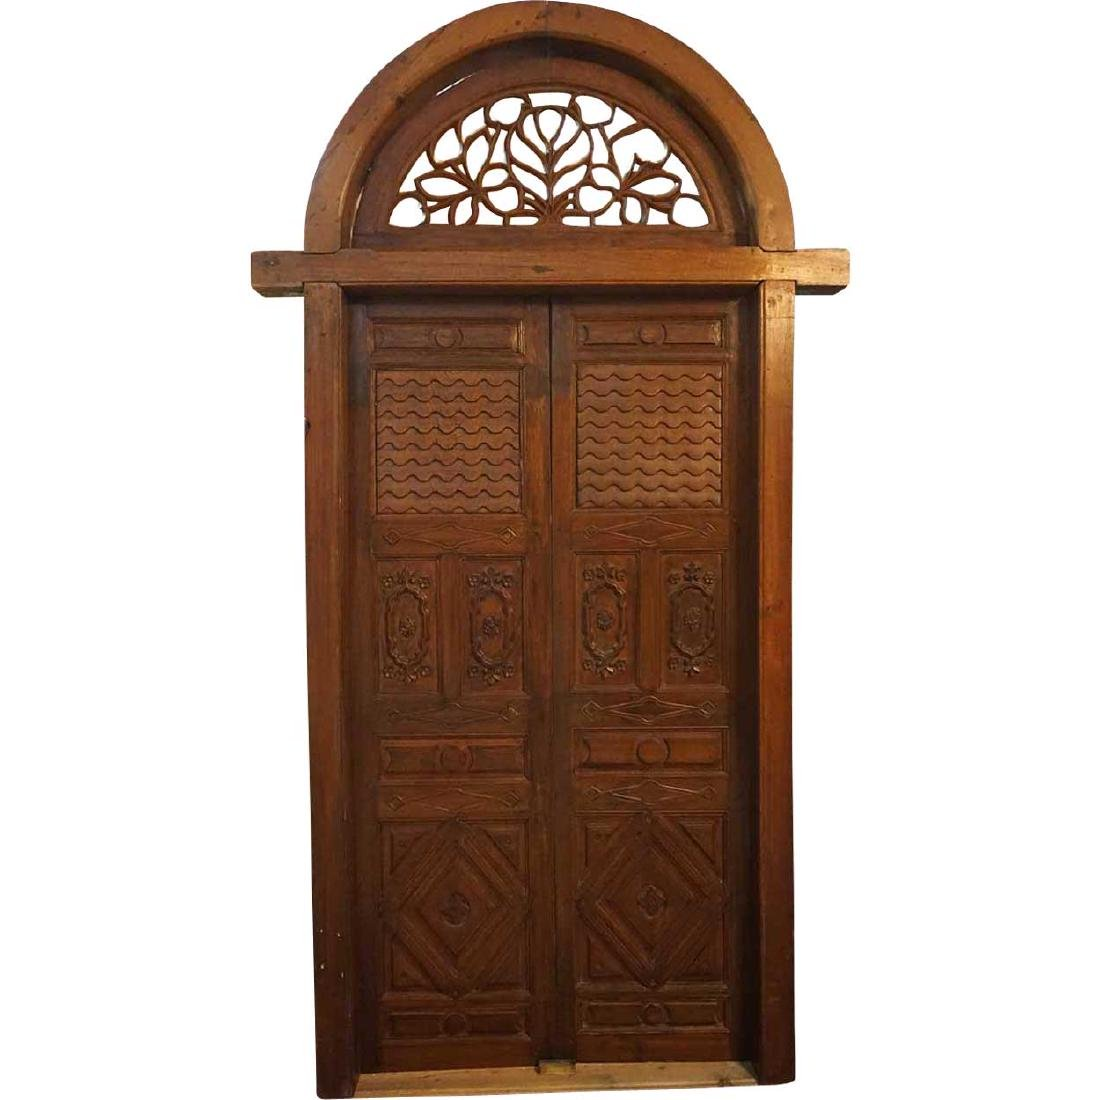 Indo-Portuguese Teak Double Door with Frame